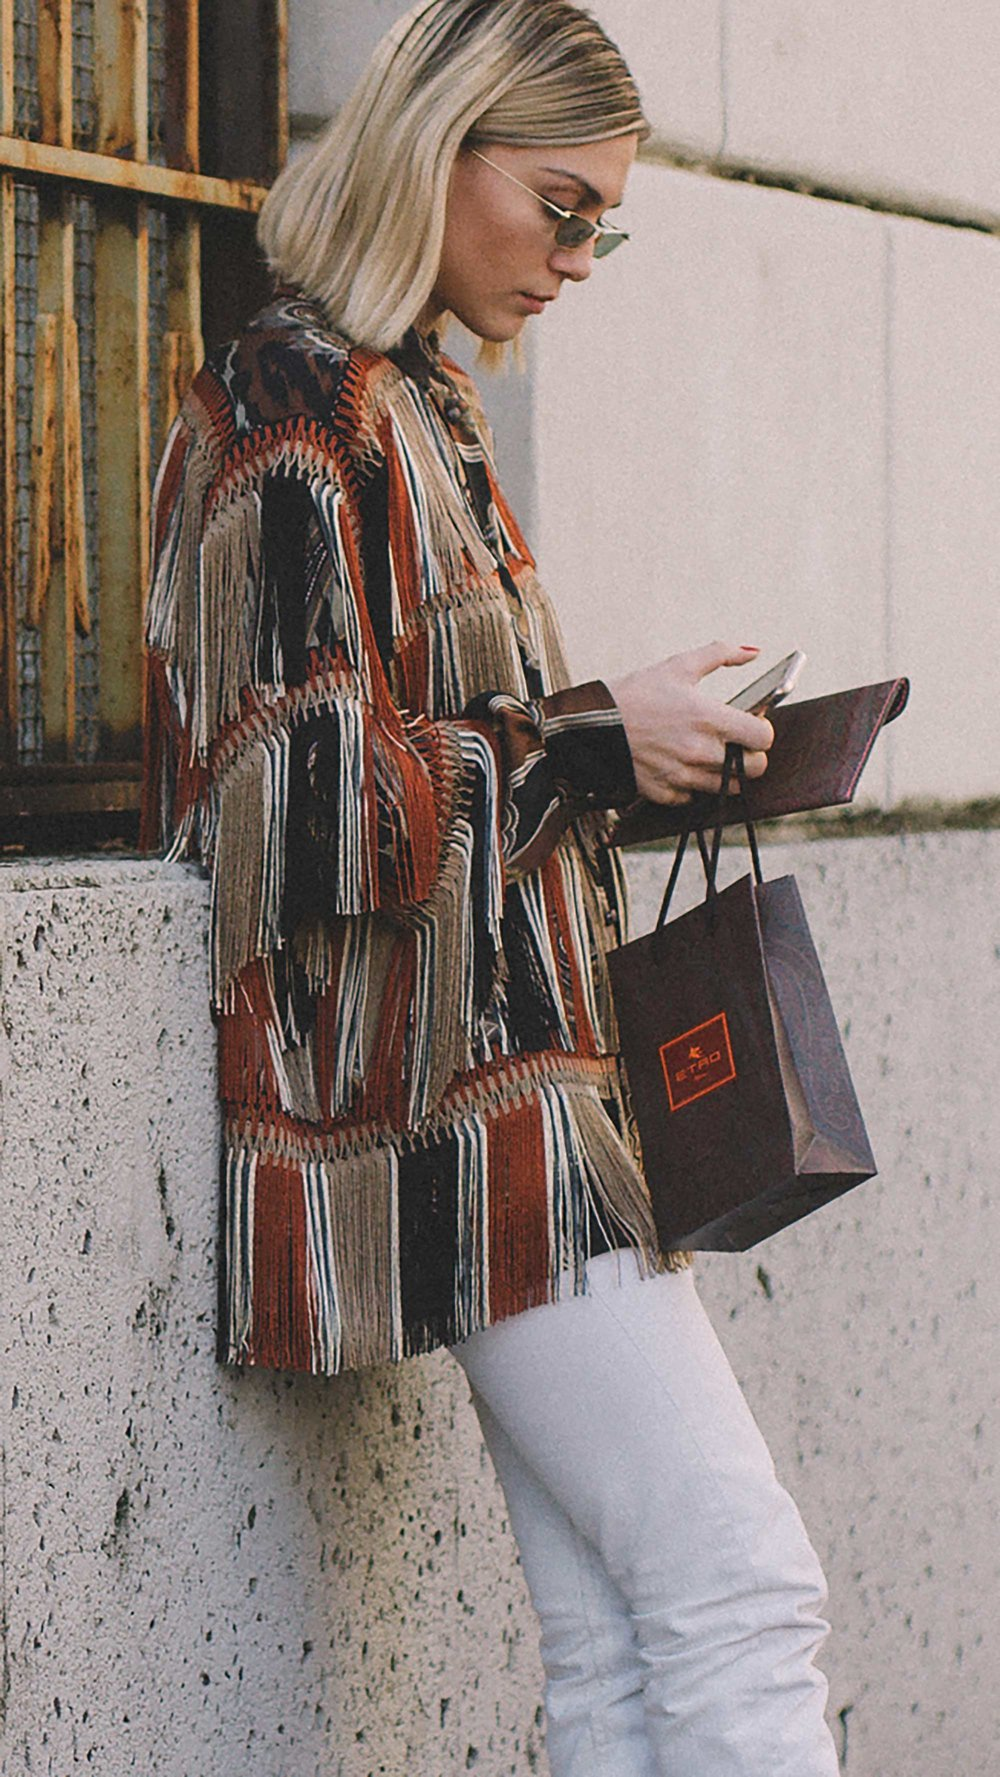 est outfits of Milan Fashion Week street style day two MFW FW19 82.jpg